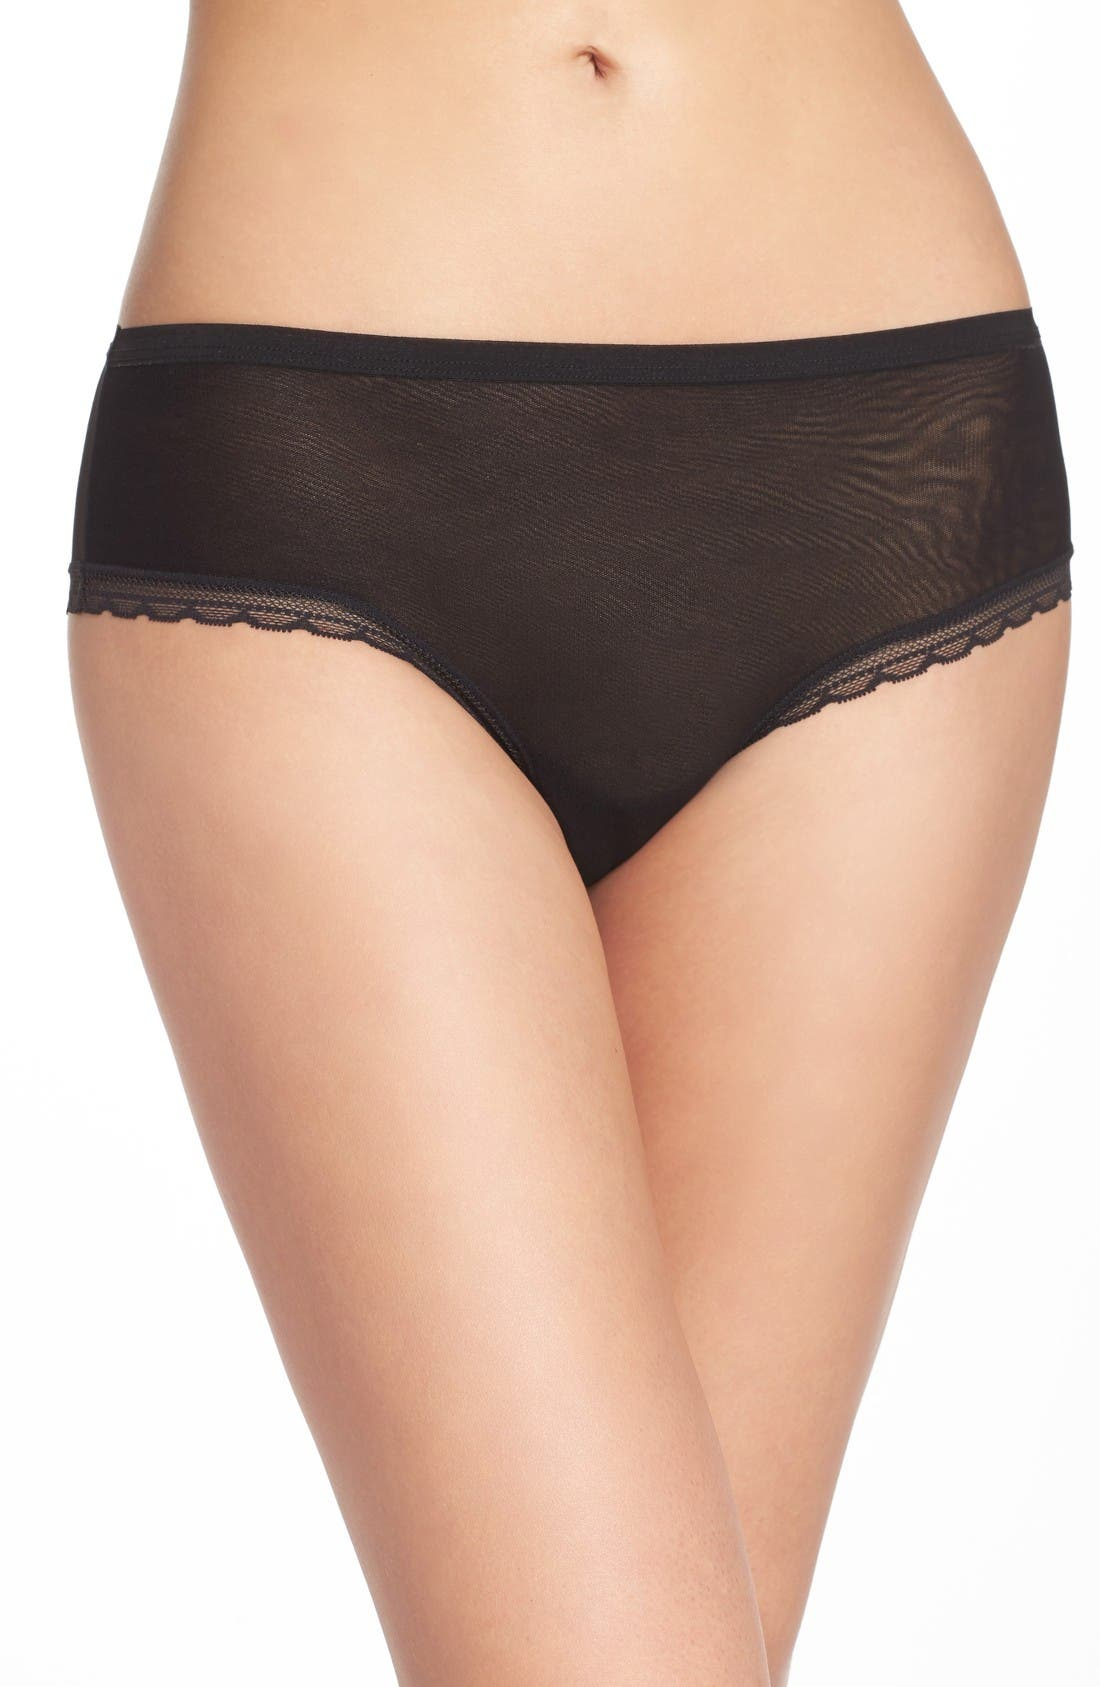 On Gossamer Modern Mesh Panties